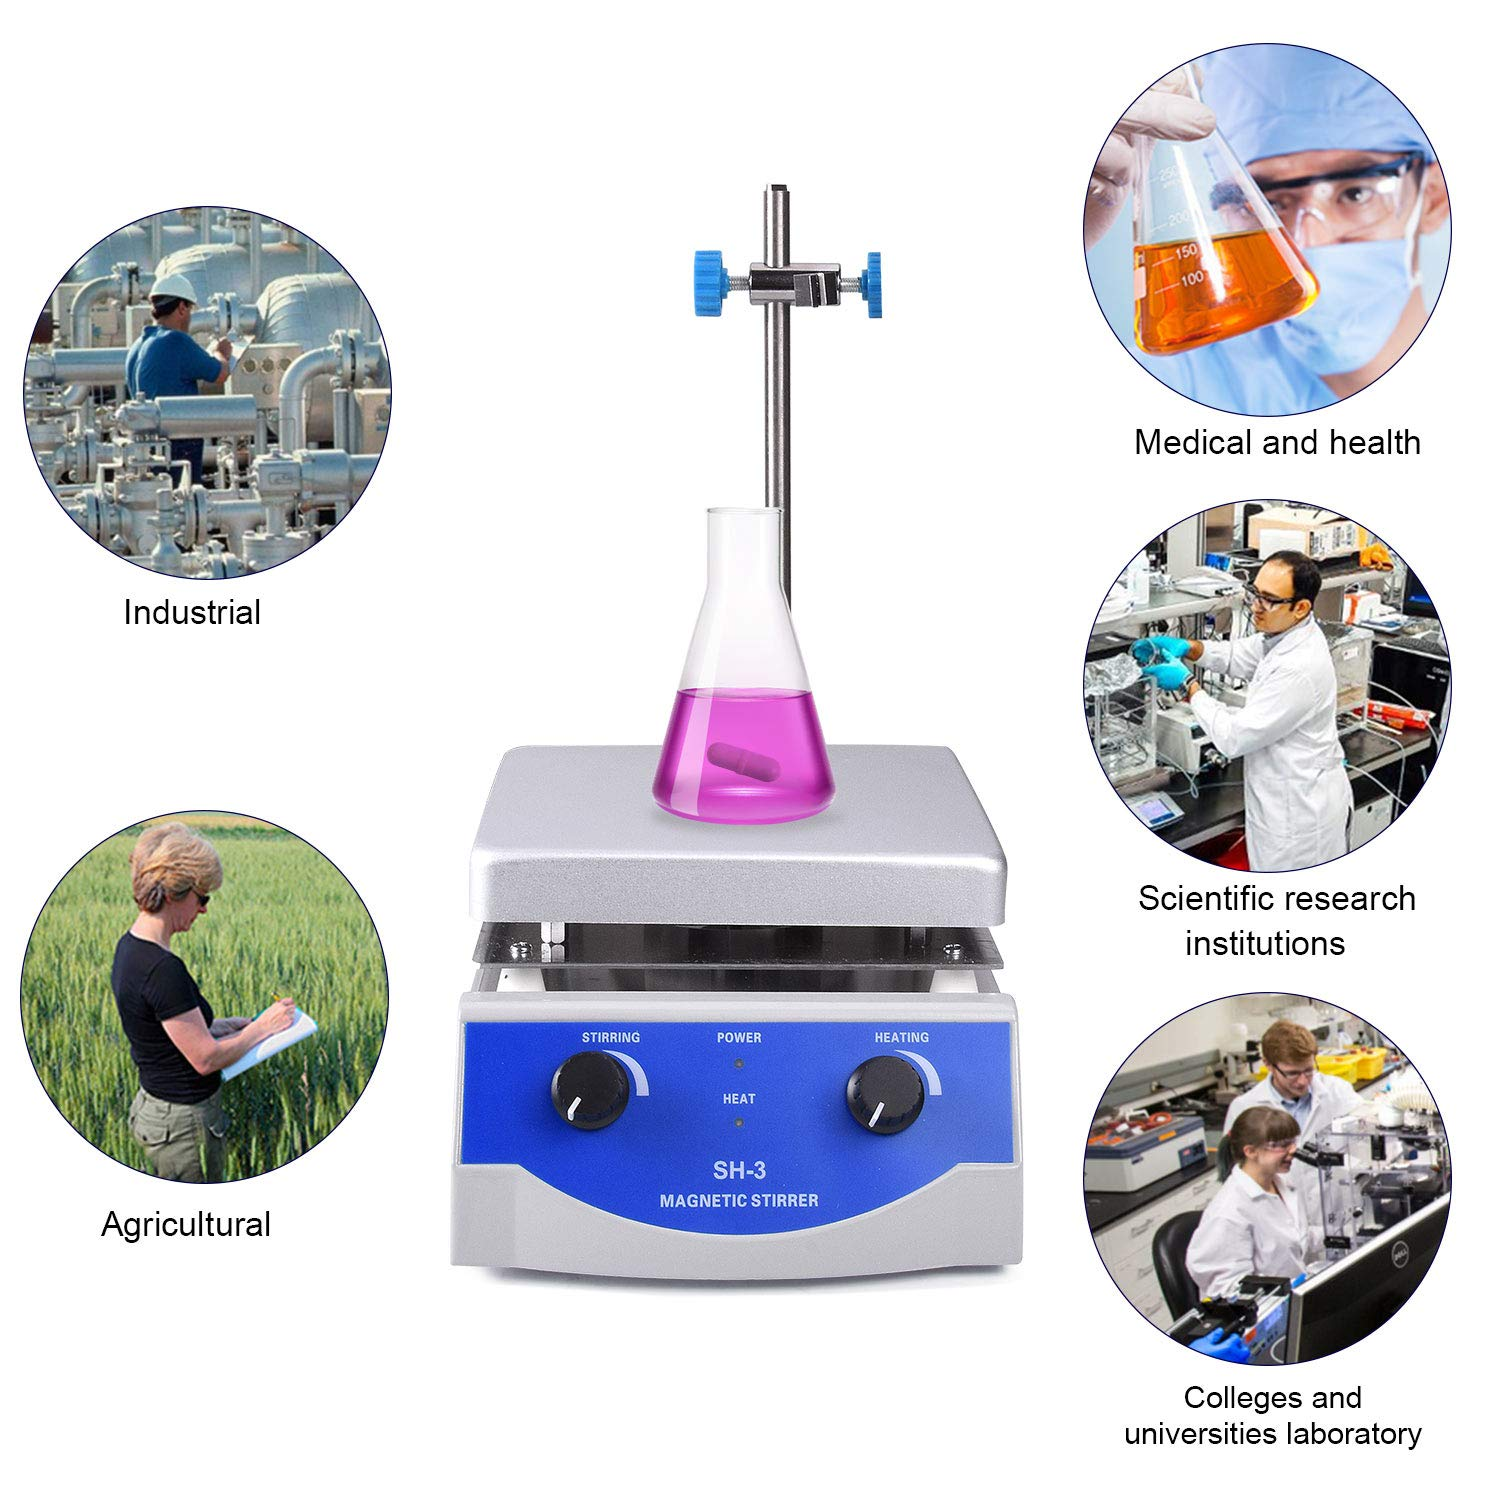 Stirring Bar /& Support Stand Included Magnetic Stirrer Hot Plate Mixer 3000mL 100-1600rpm 6.7 x 6.7 inch Max 380/°C 716︒F Hotplate Stirrer